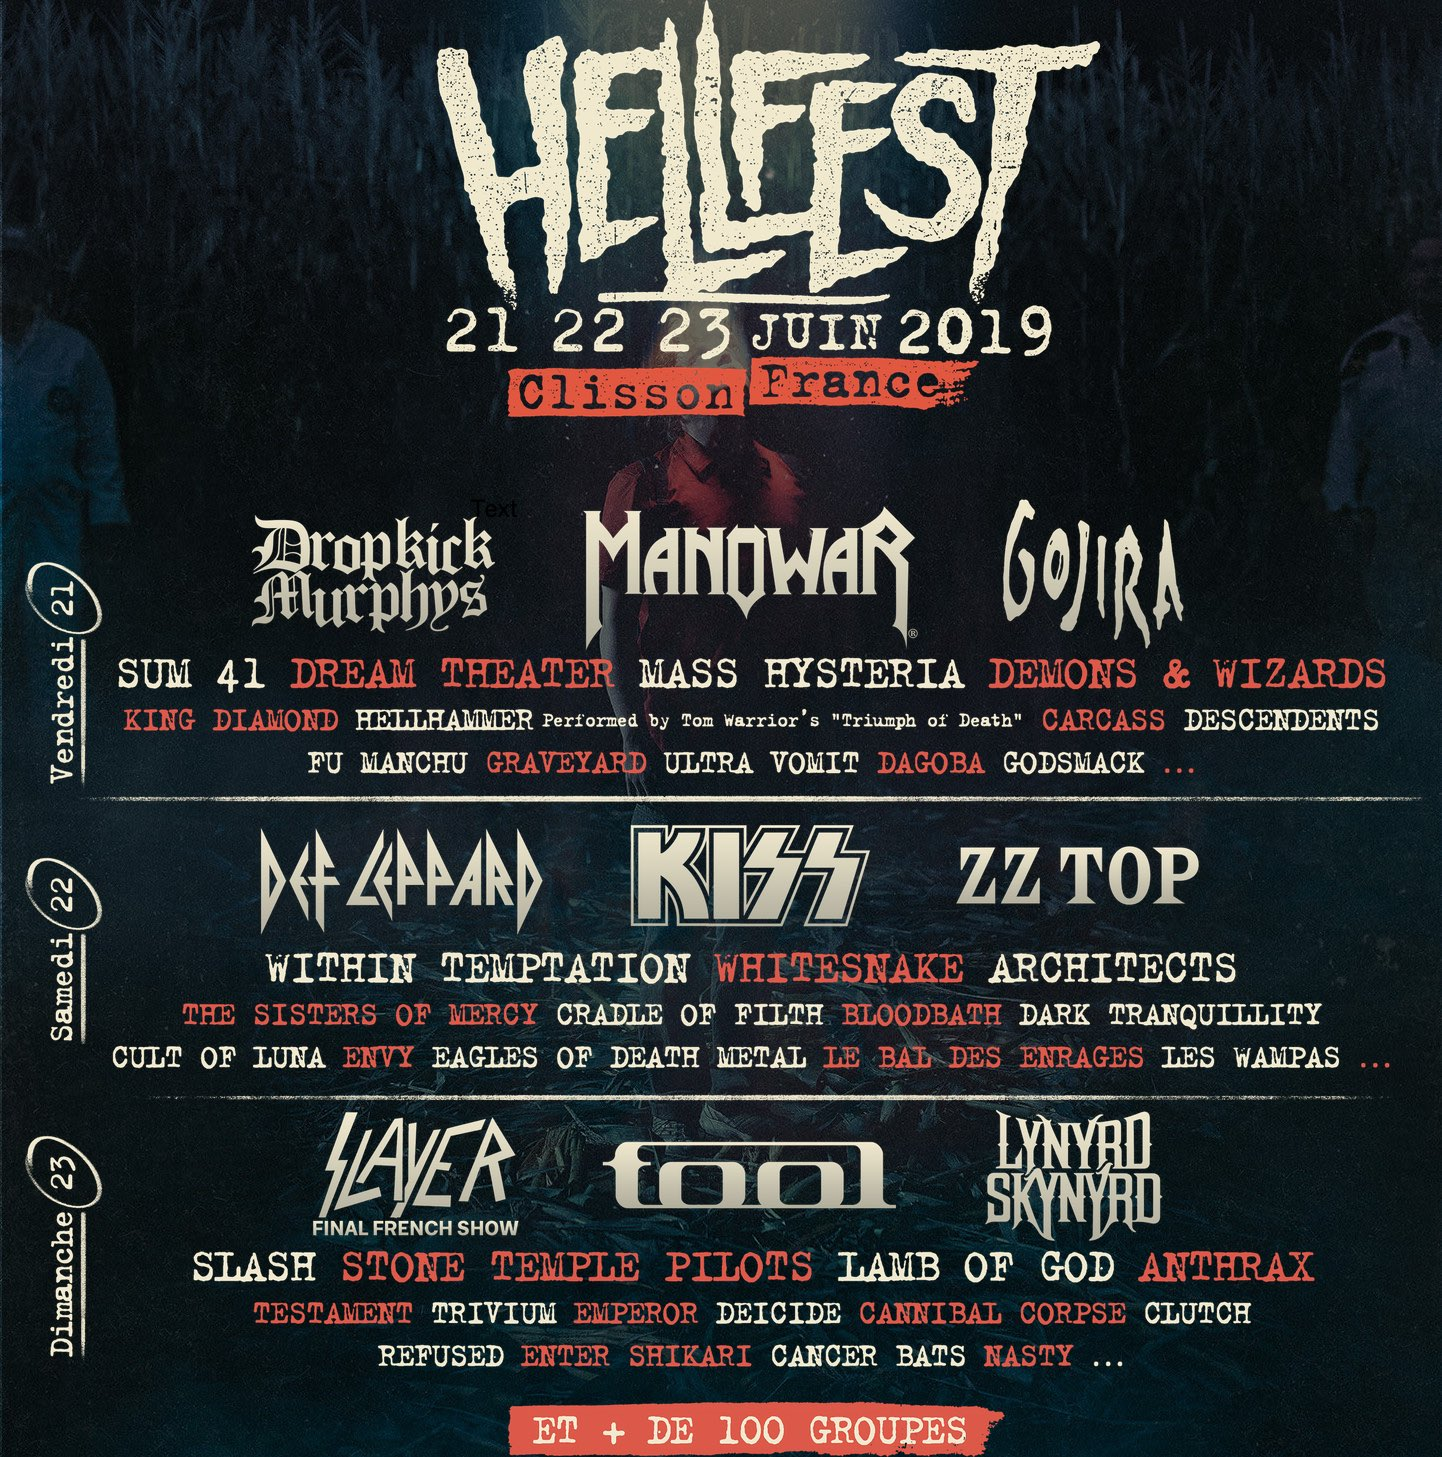 Within Temptation RESIST Festival France Hellfest 2019